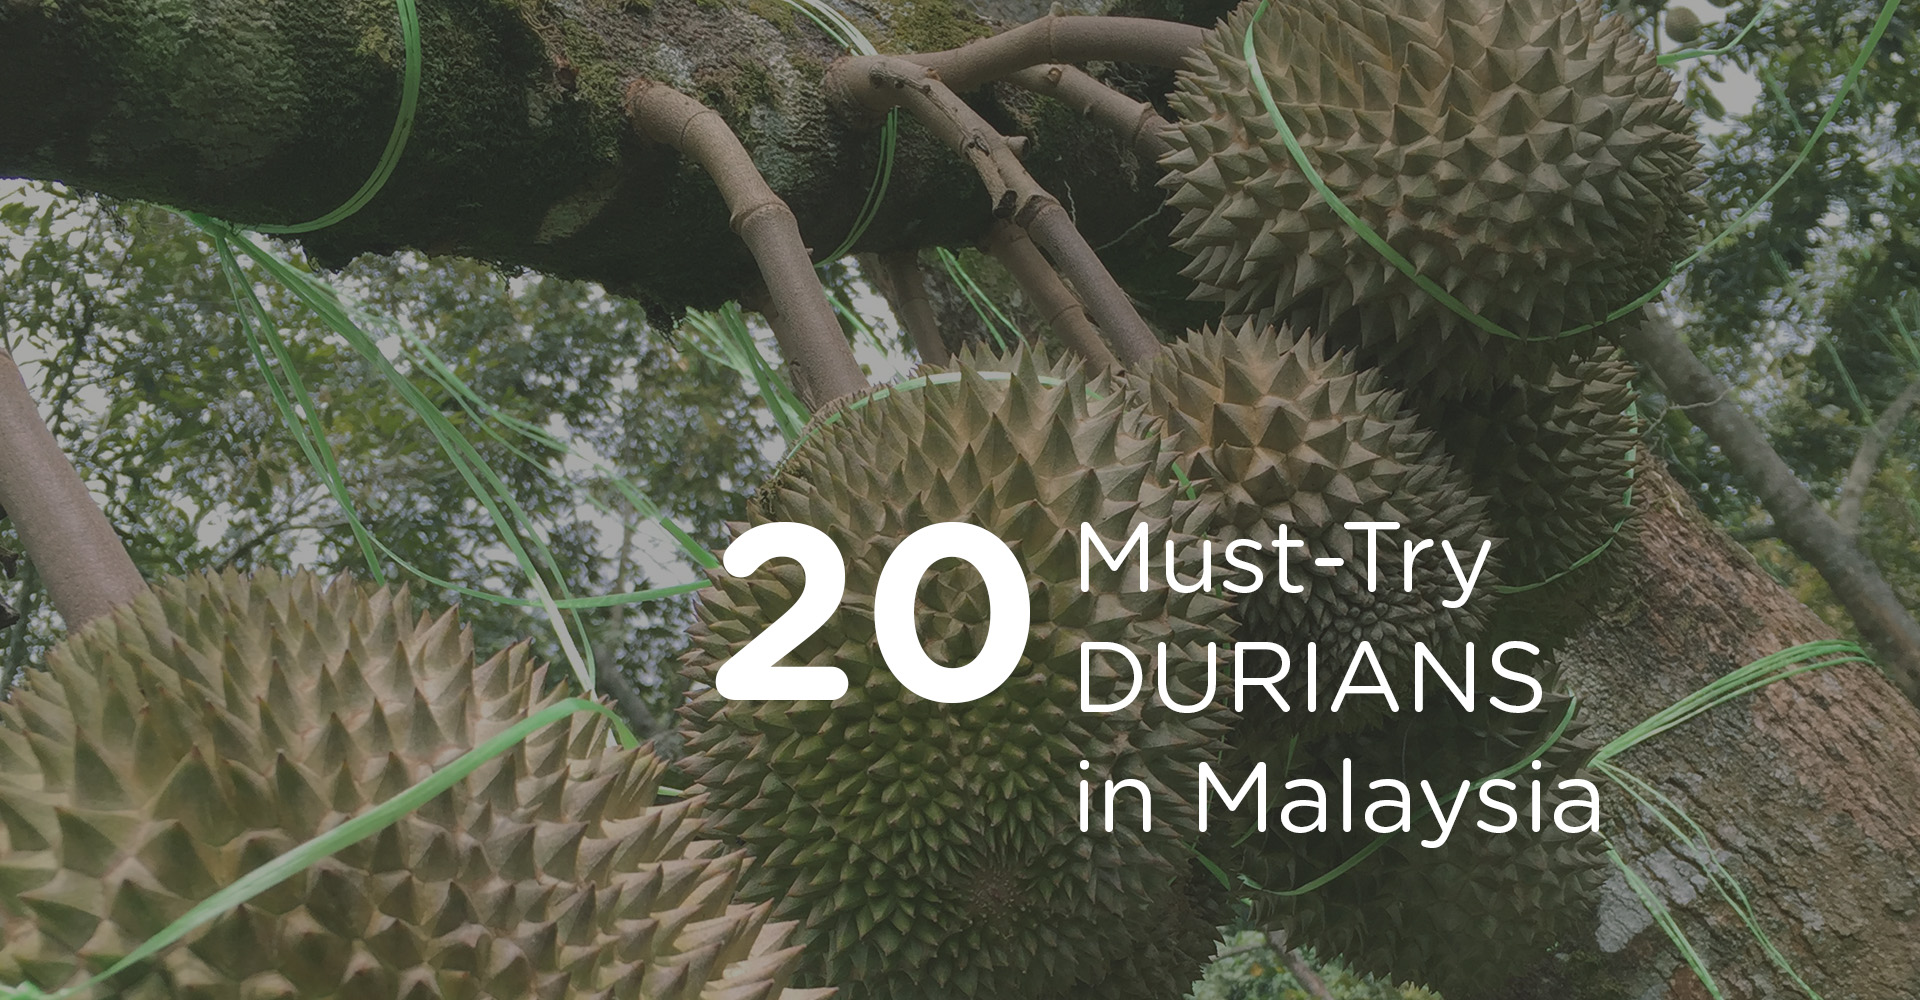 20 Must-Try Durians in Malaysia